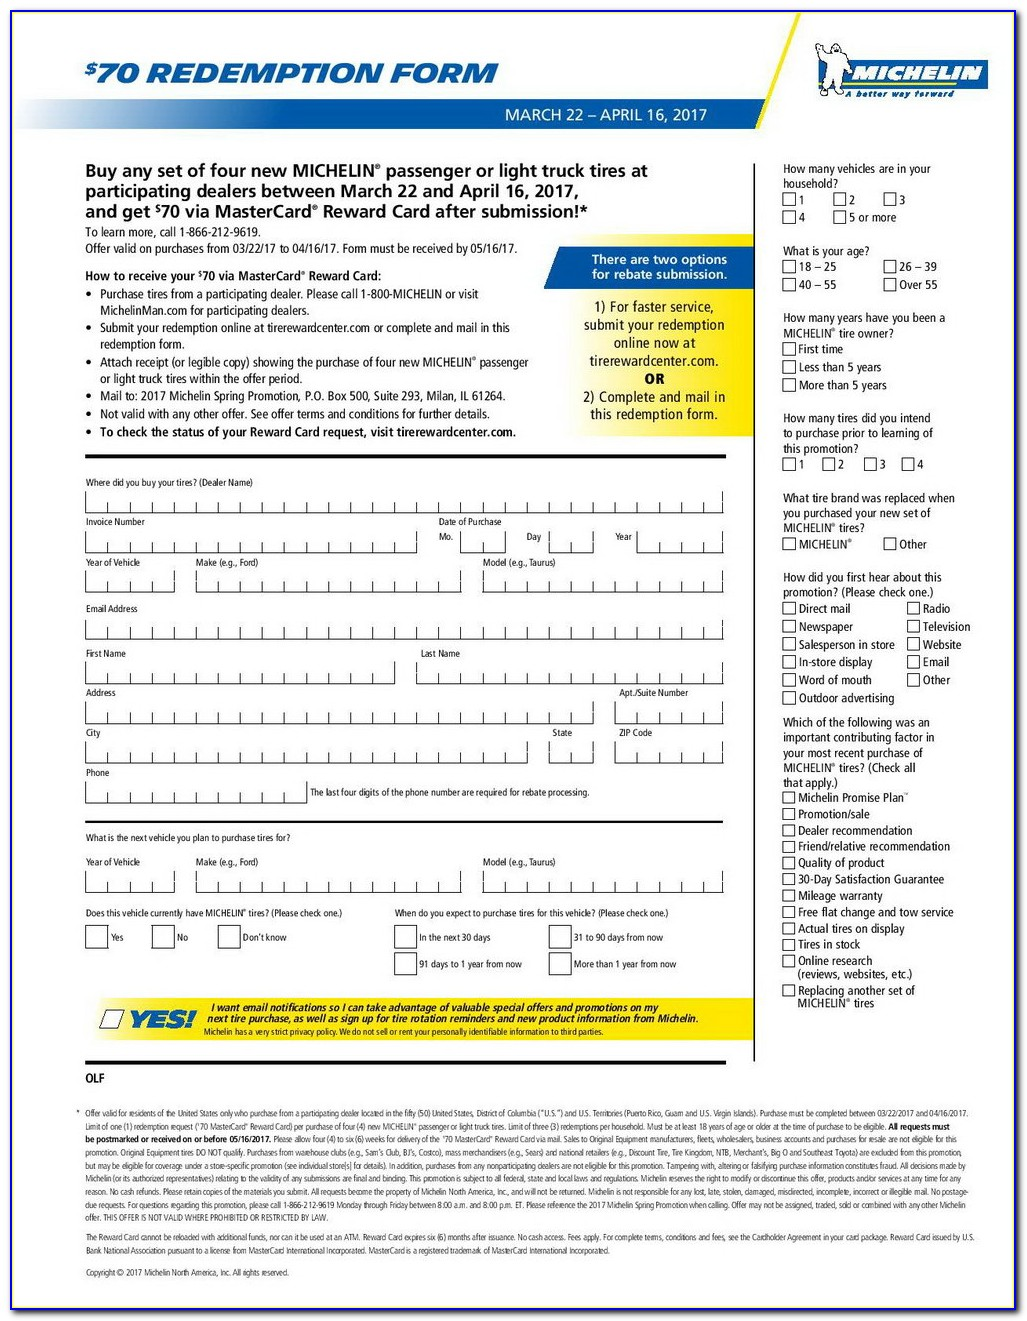 Michelin Rebate Form 2017